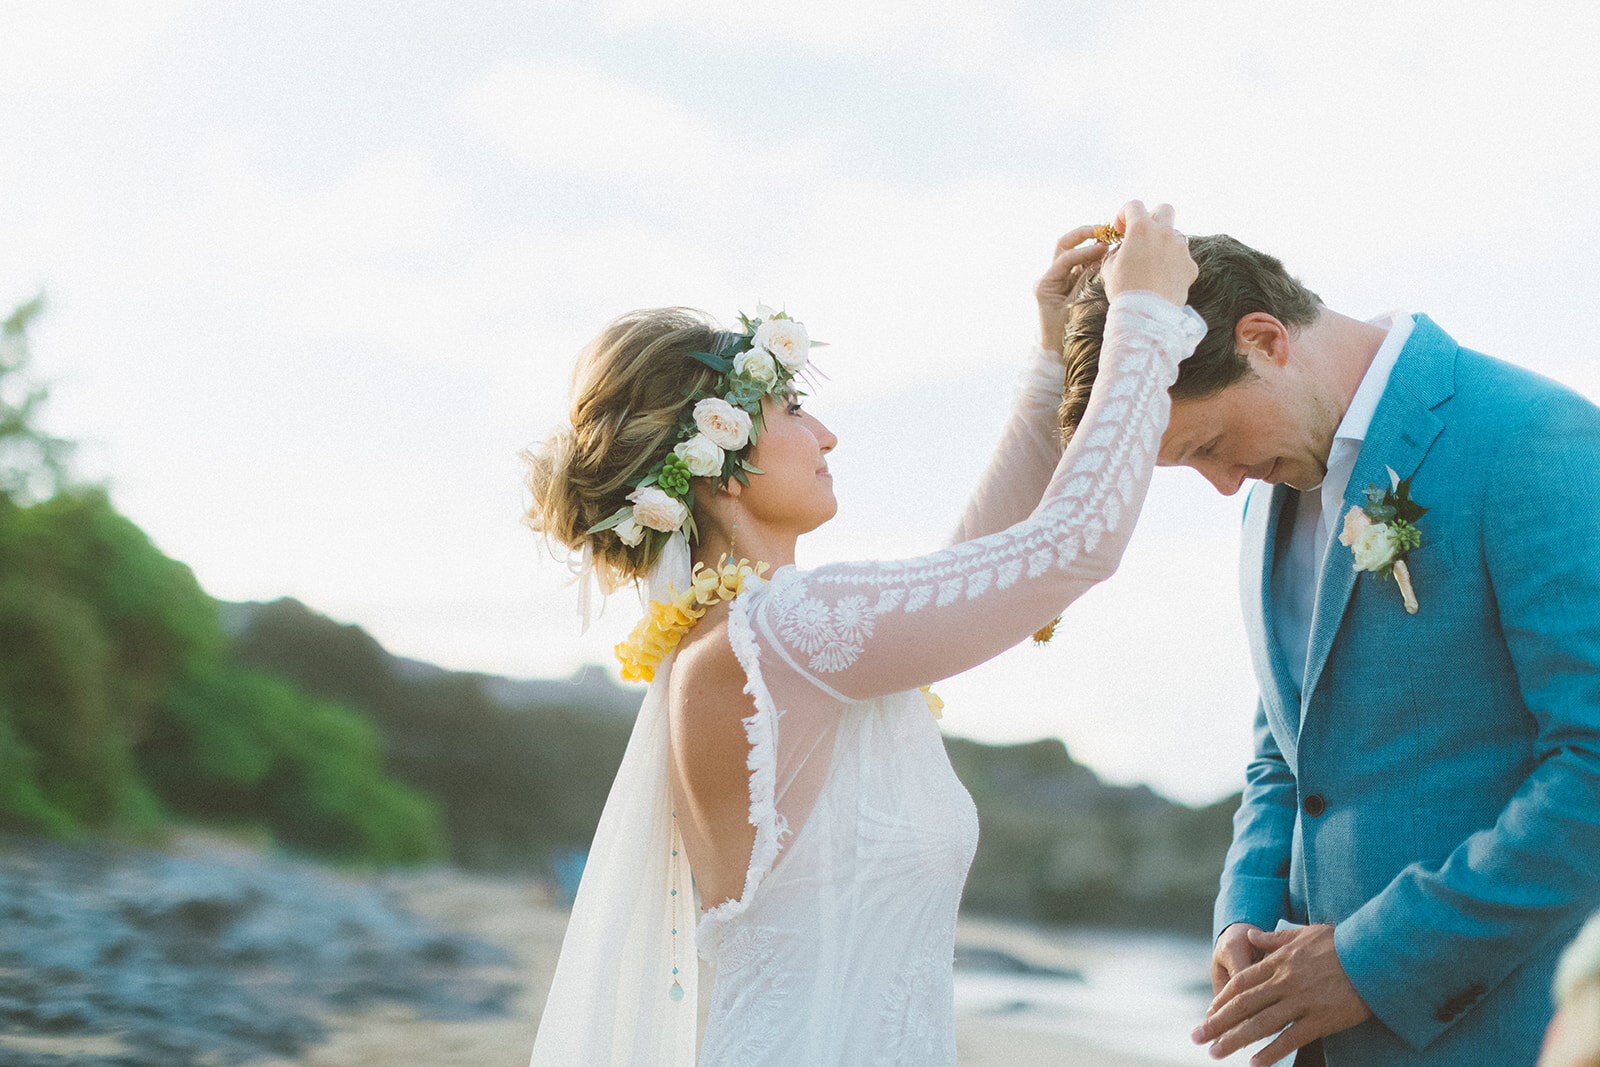 Maui wedding photographer20181126_0022.jpg